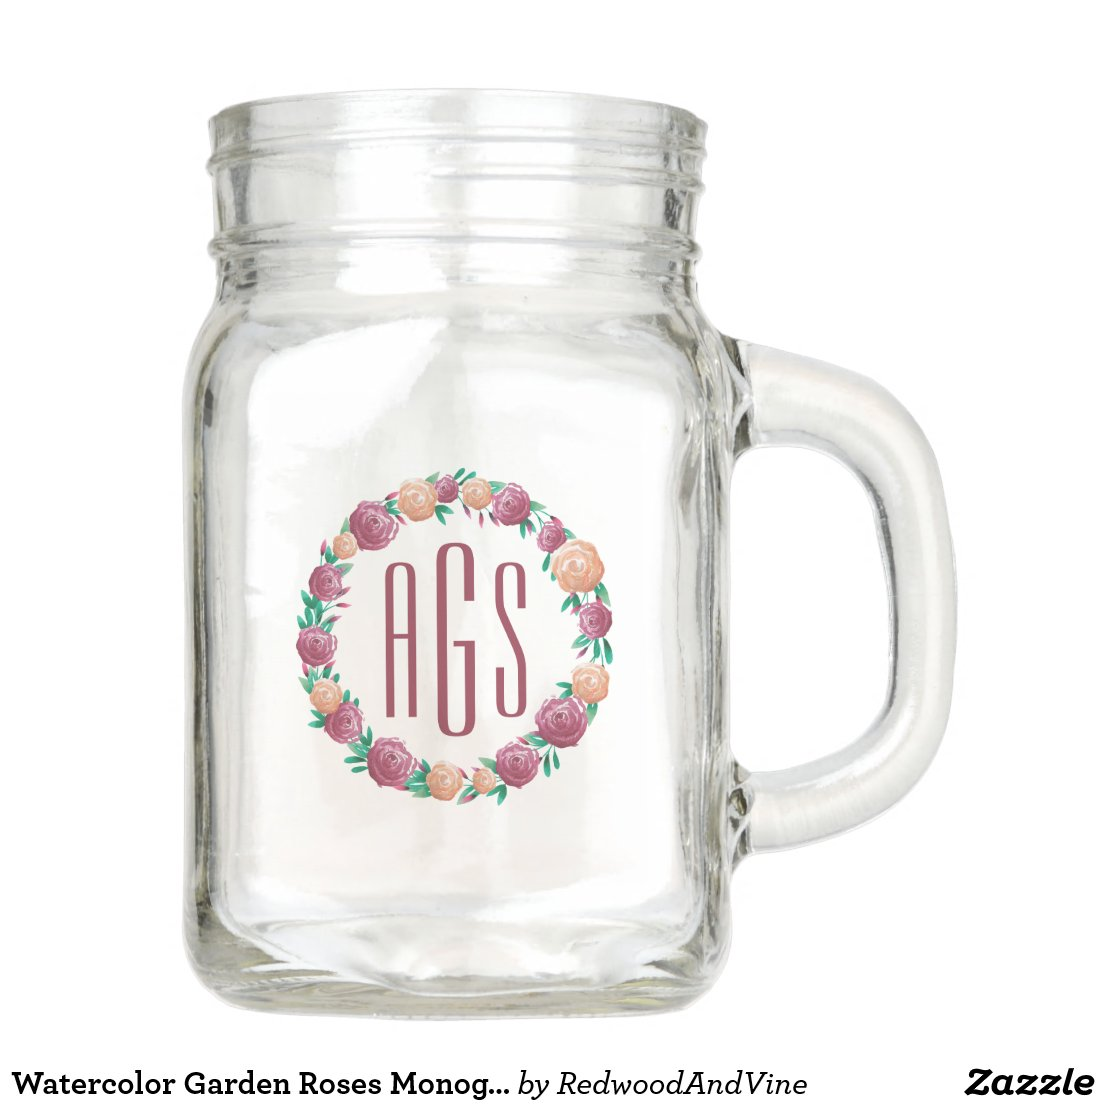 Watercolor Garden Roses Monogram Mason Jar